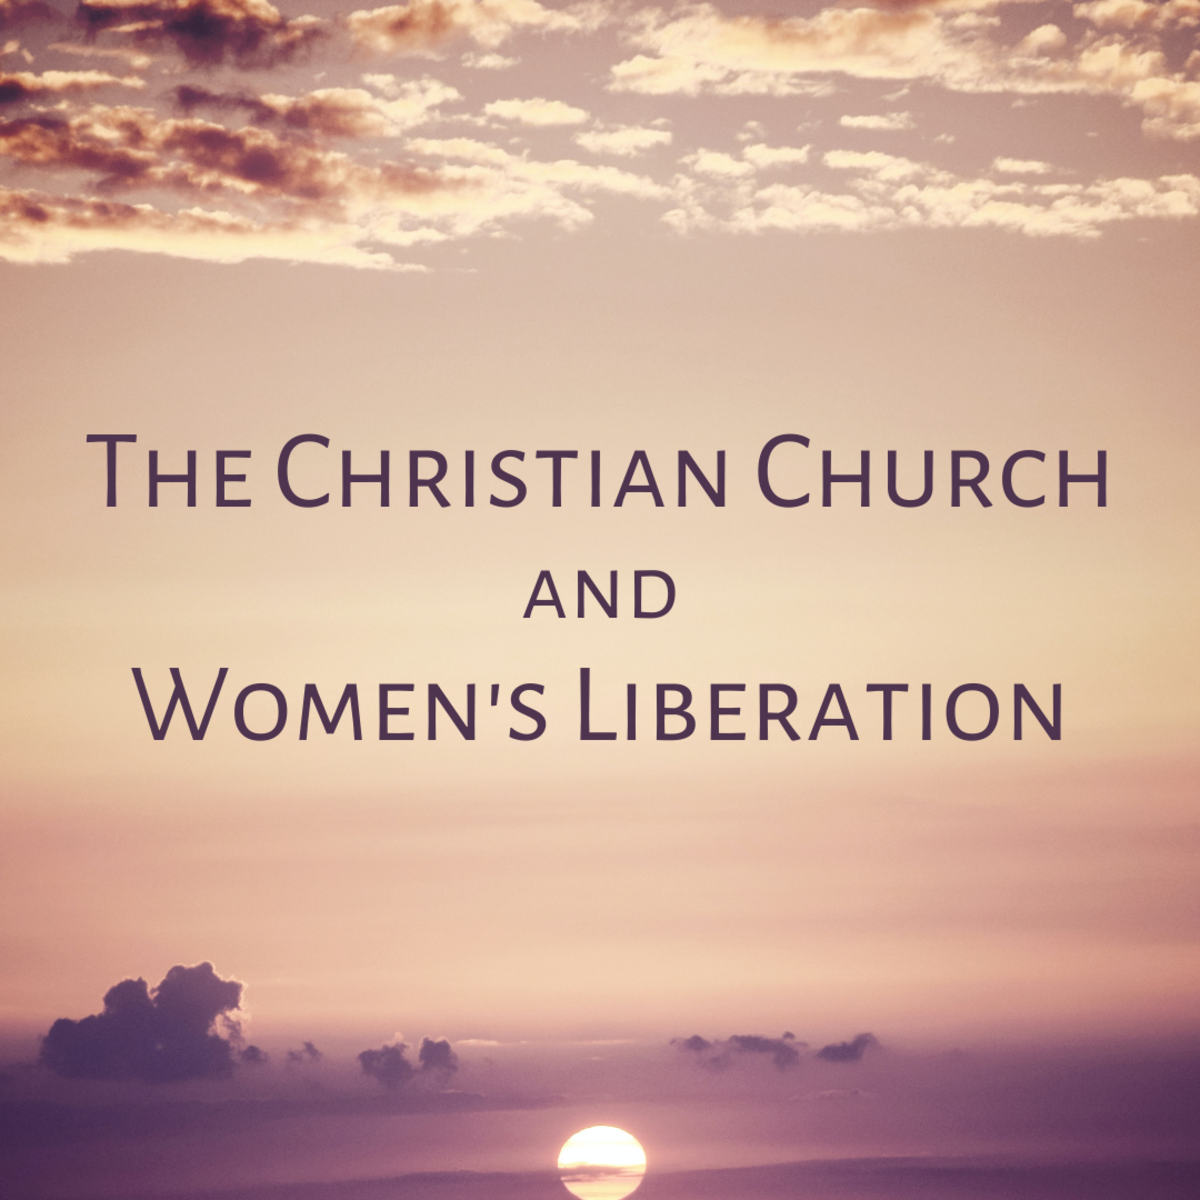 Does the Christian Church Hamper Women's Liberation?